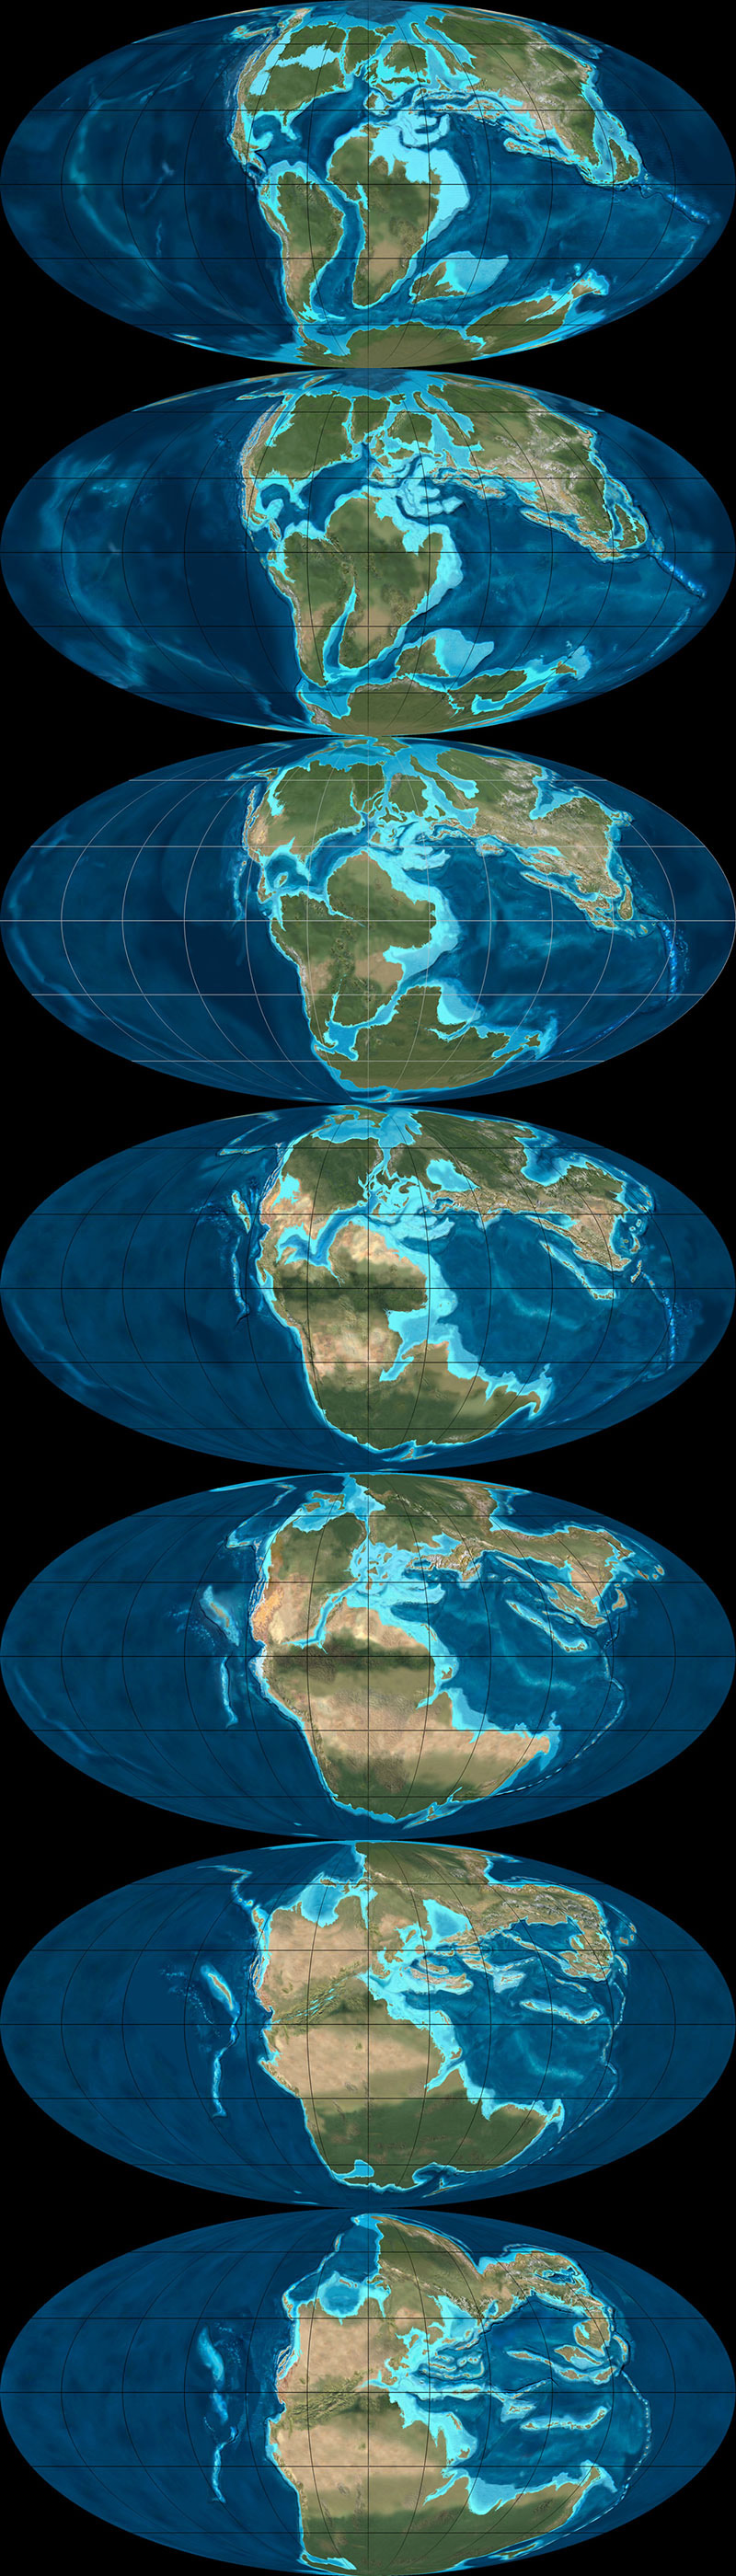 What Did the Continents Look Like Millions of Years Ago?   The